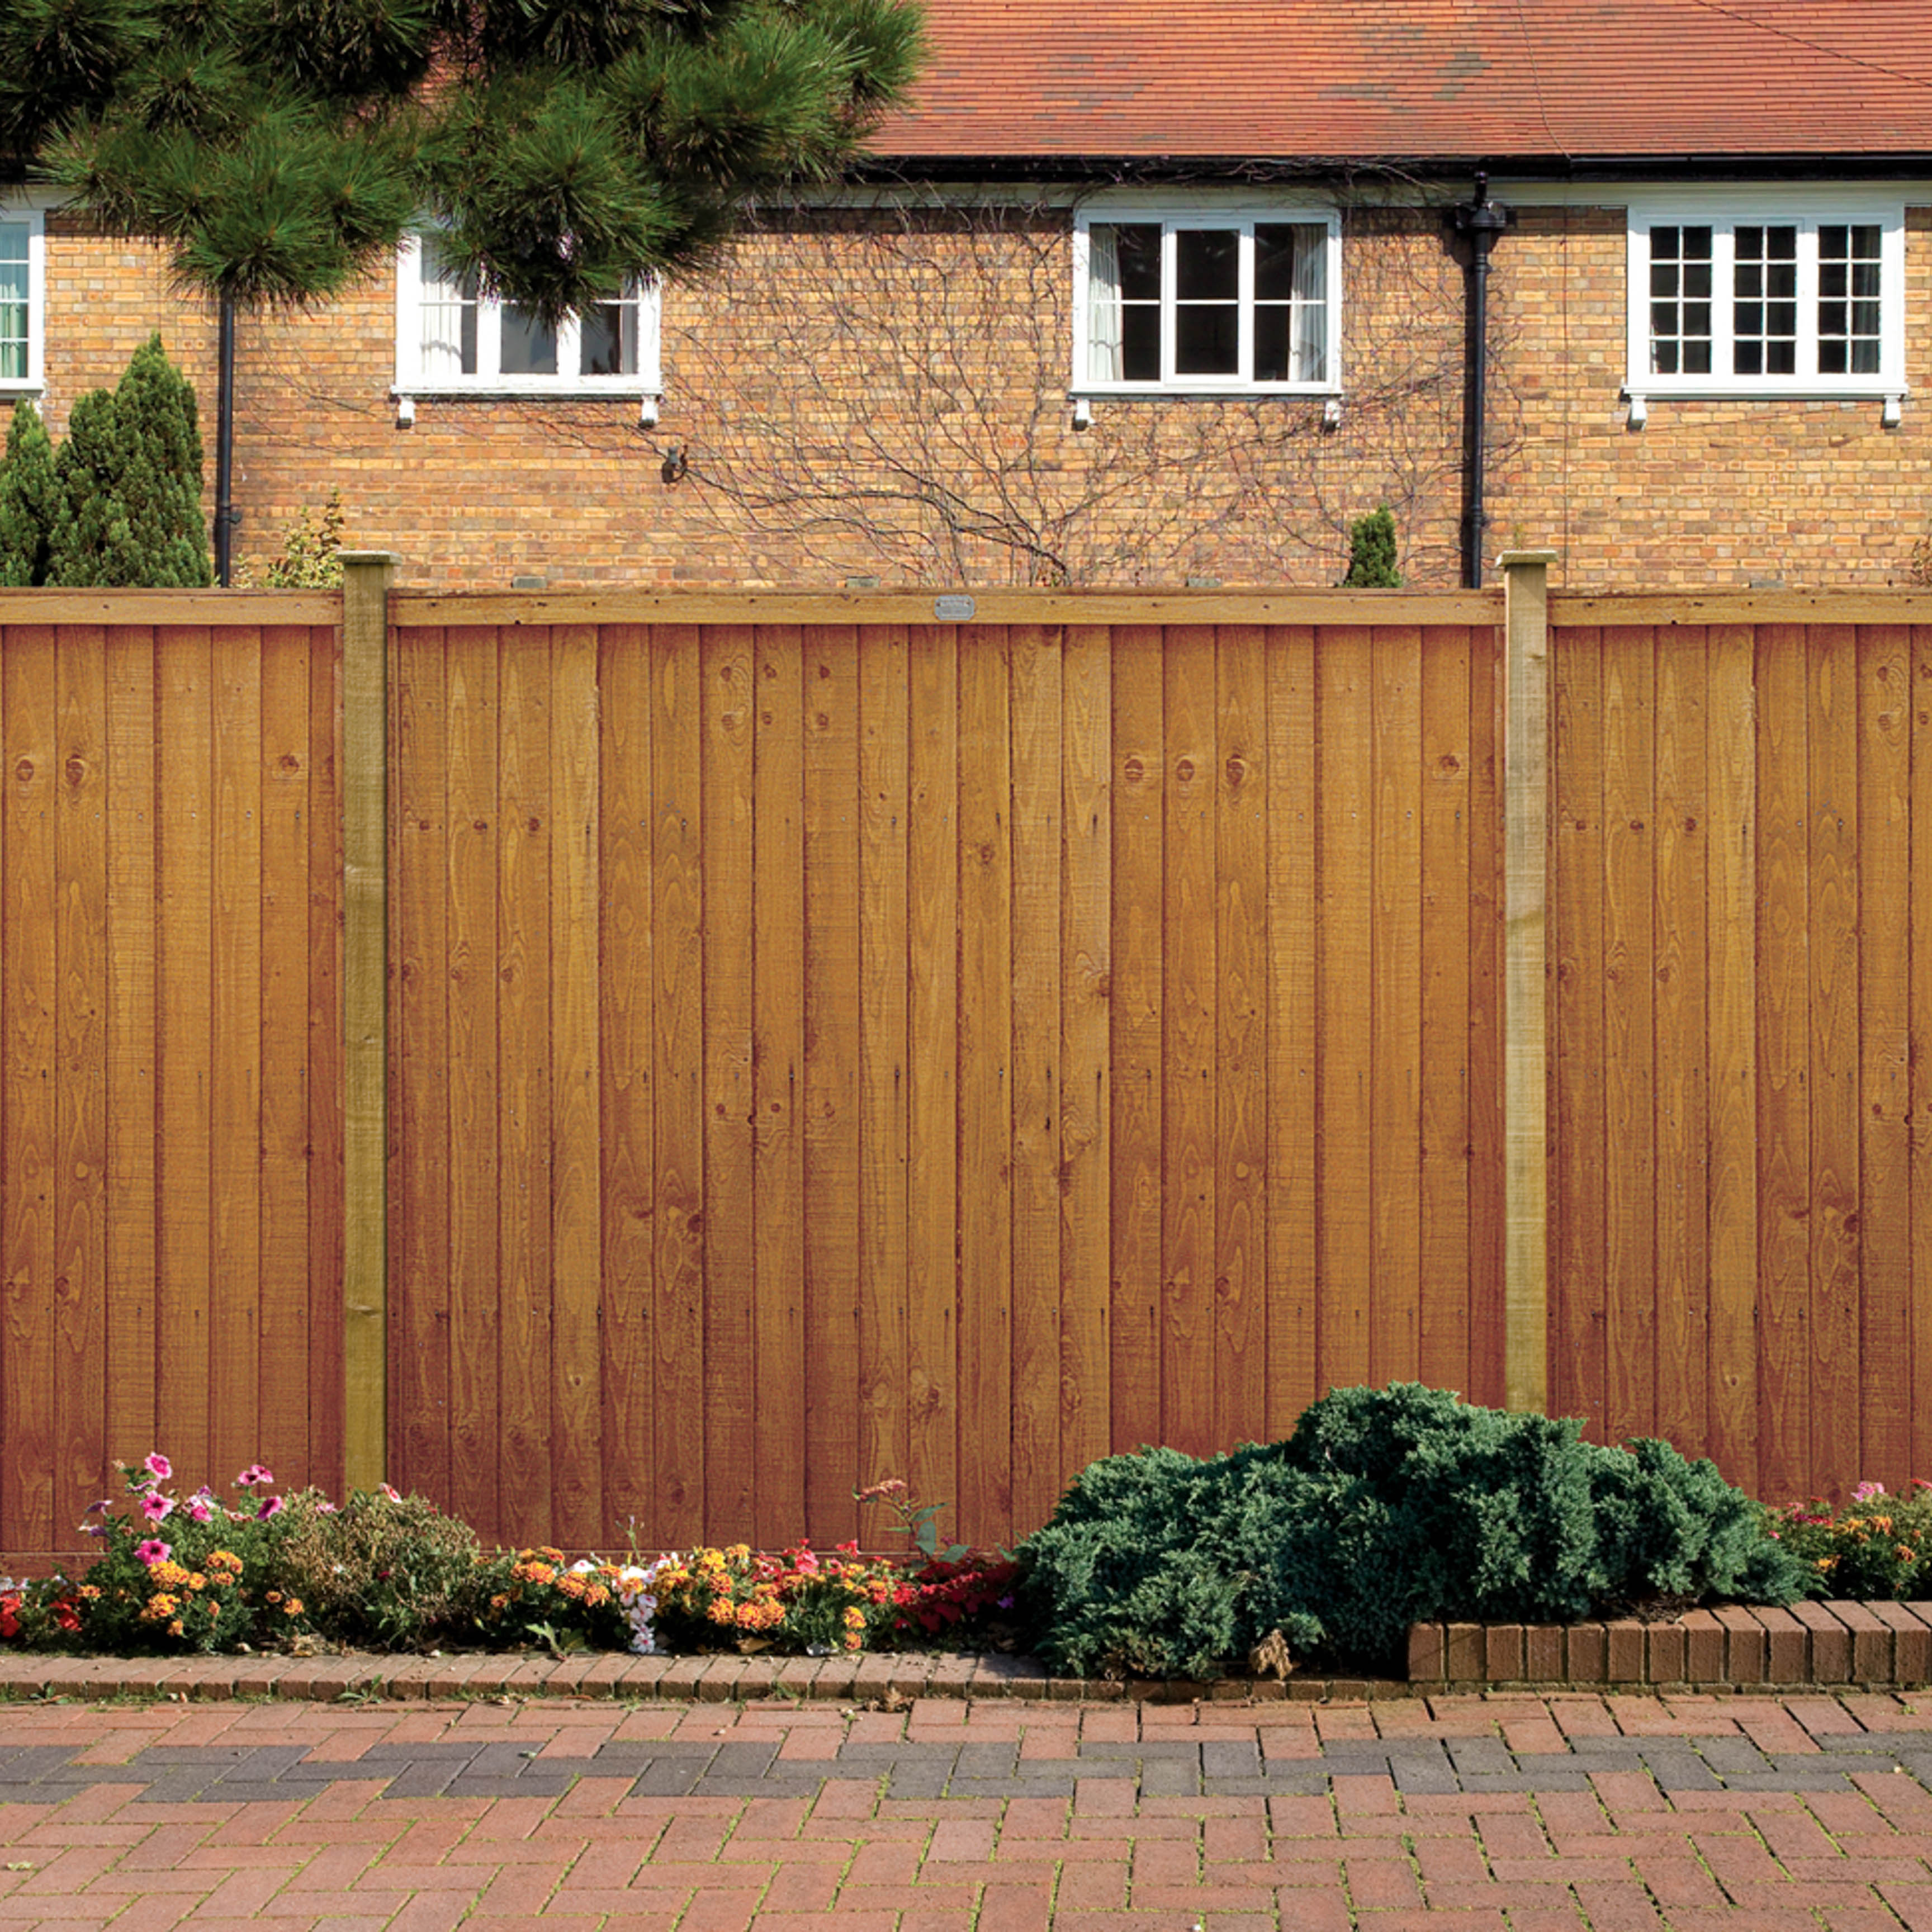 timber requirements seaford ltd fencing and gates. Black Bedroom Furniture Sets. Home Design Ideas